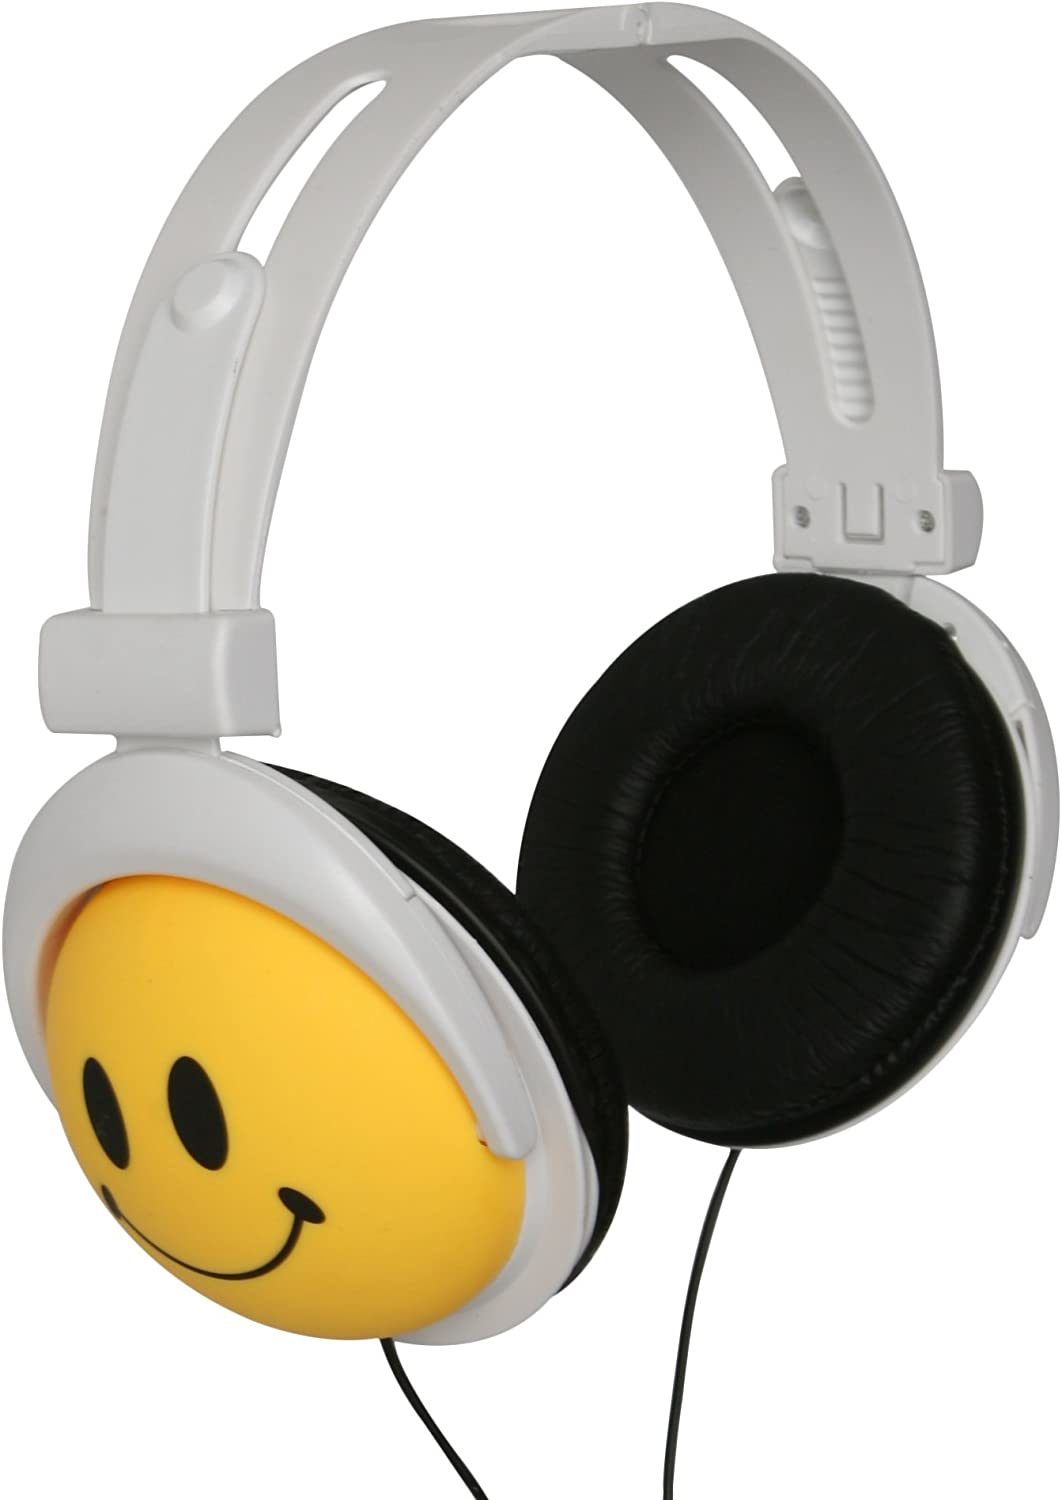 Original Authentic Happy CANZ Headphones by Roxant with Smiley Face Emoji, Foldable, Fully Adjustable Over-Ear Padded Comfort